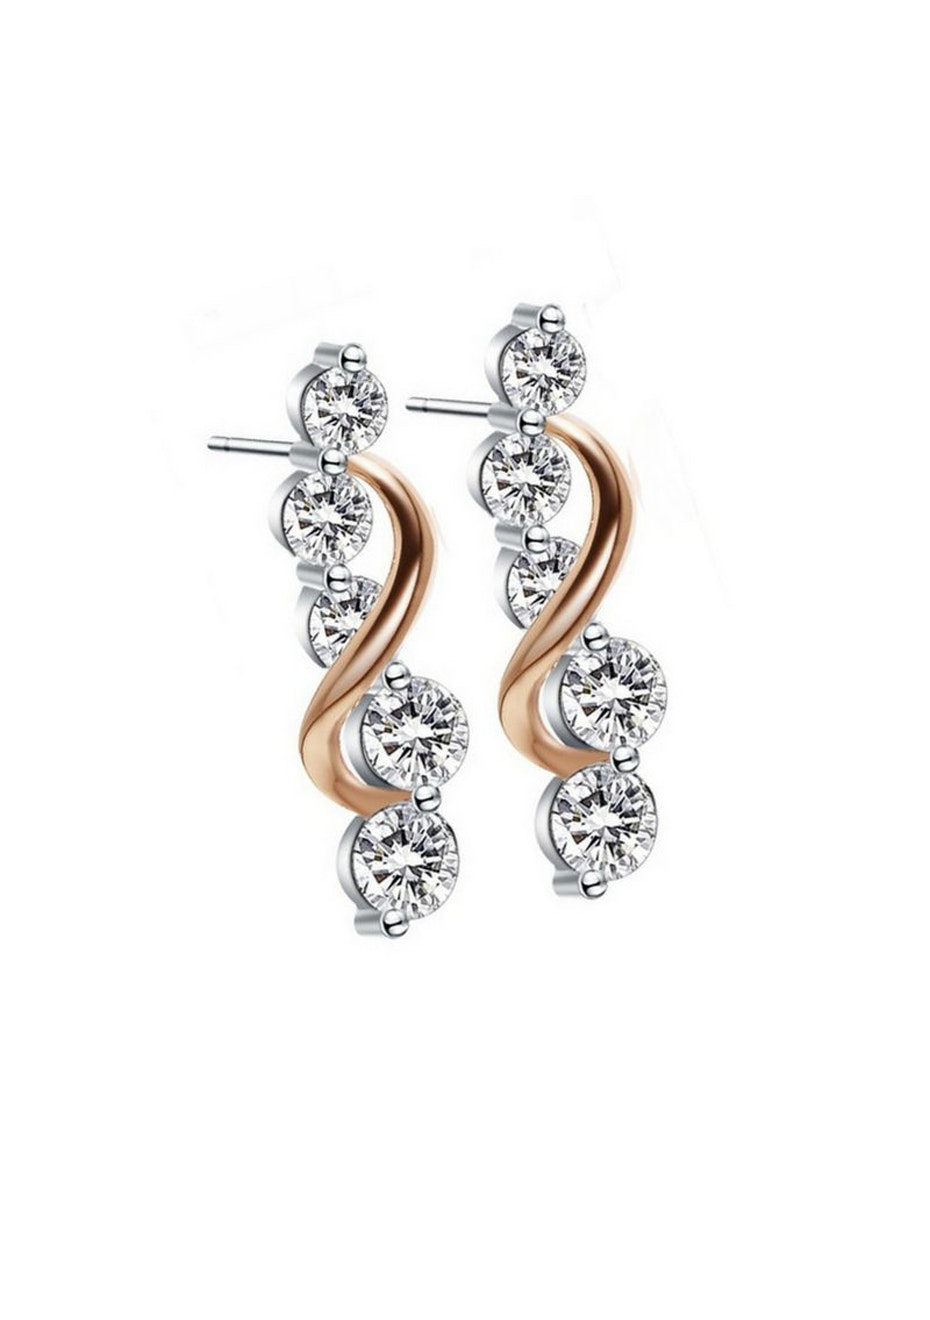 Two Tone Earrings Embellished with Crystals from Swarovski